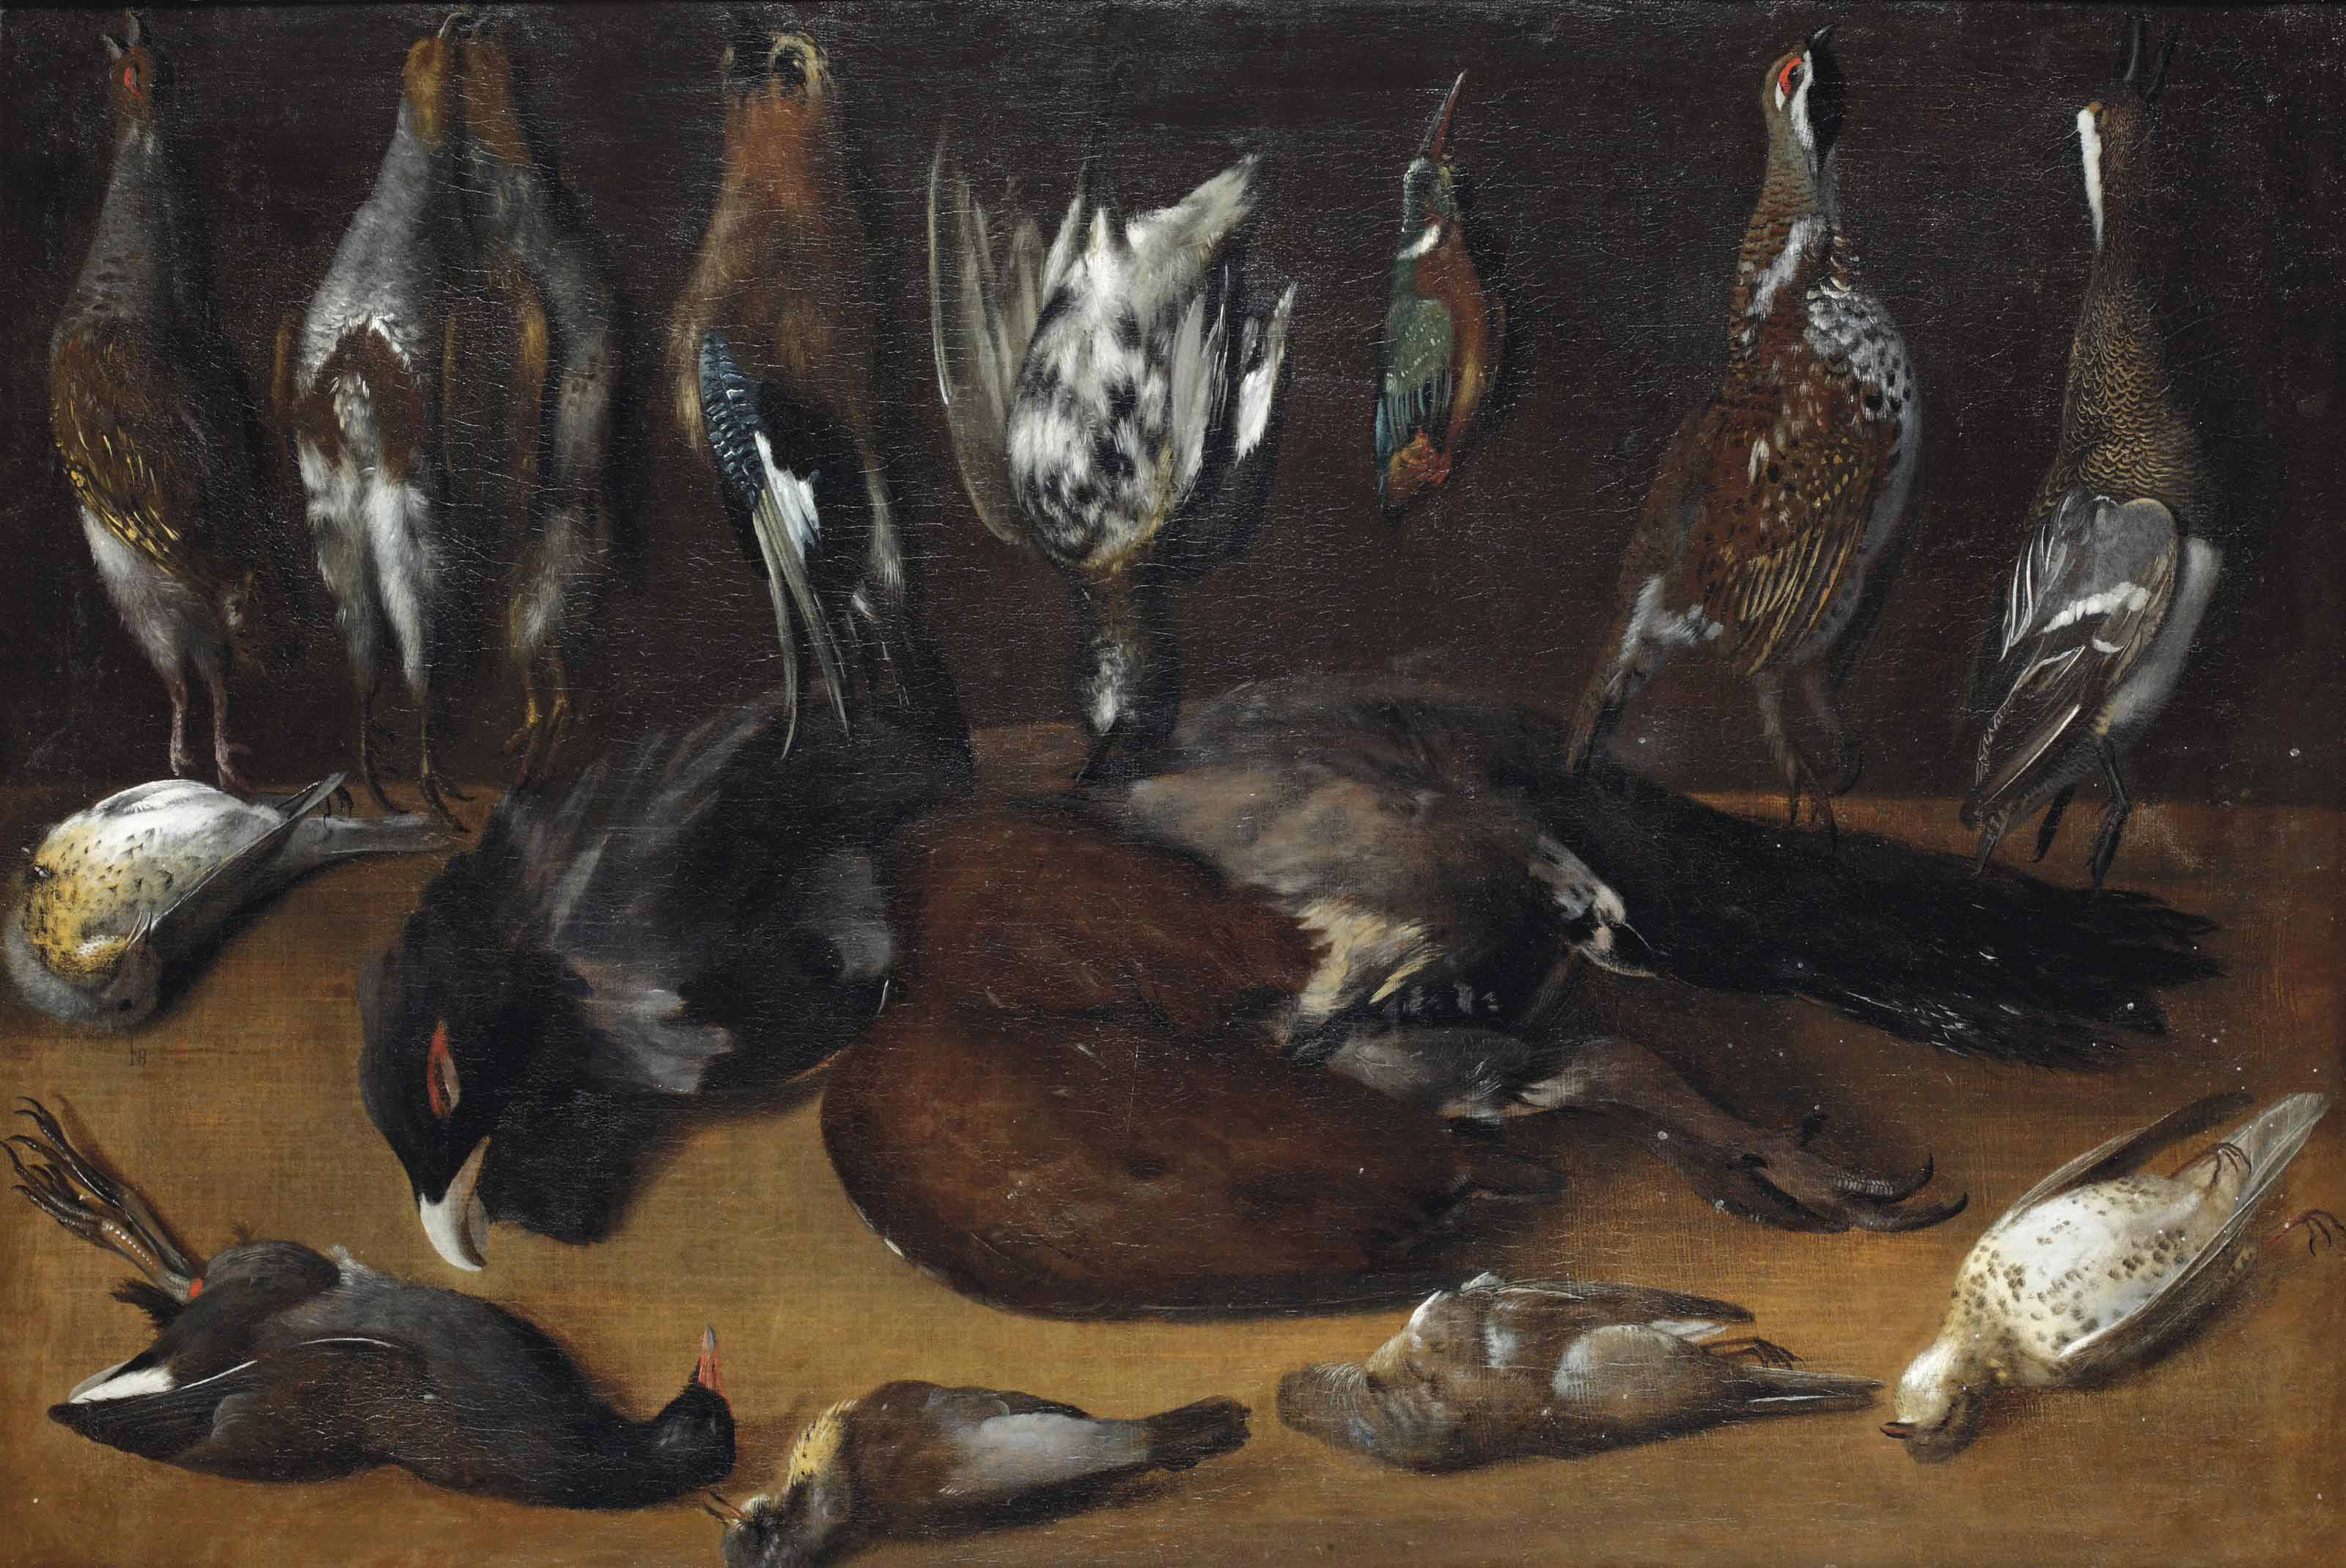 Partridges, an eurasian jay, a quail, a kingfisher and a duck, all suspended from nails, a capercaillie and various other birds on a table